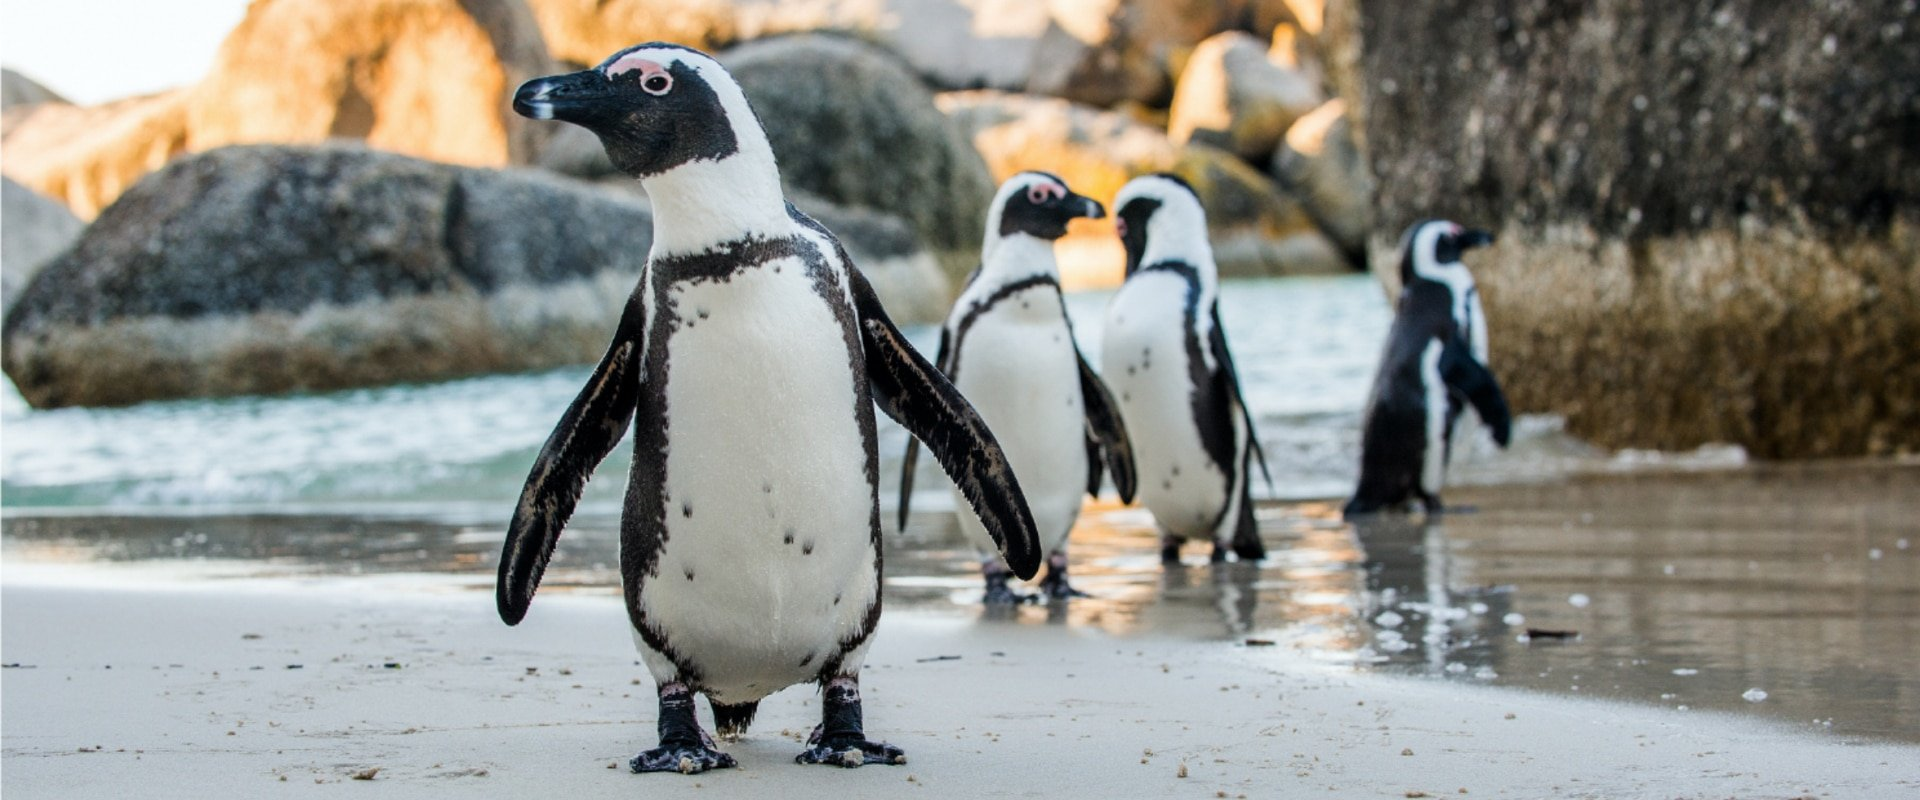 Delight in the quirky nature of the African Penguin colony